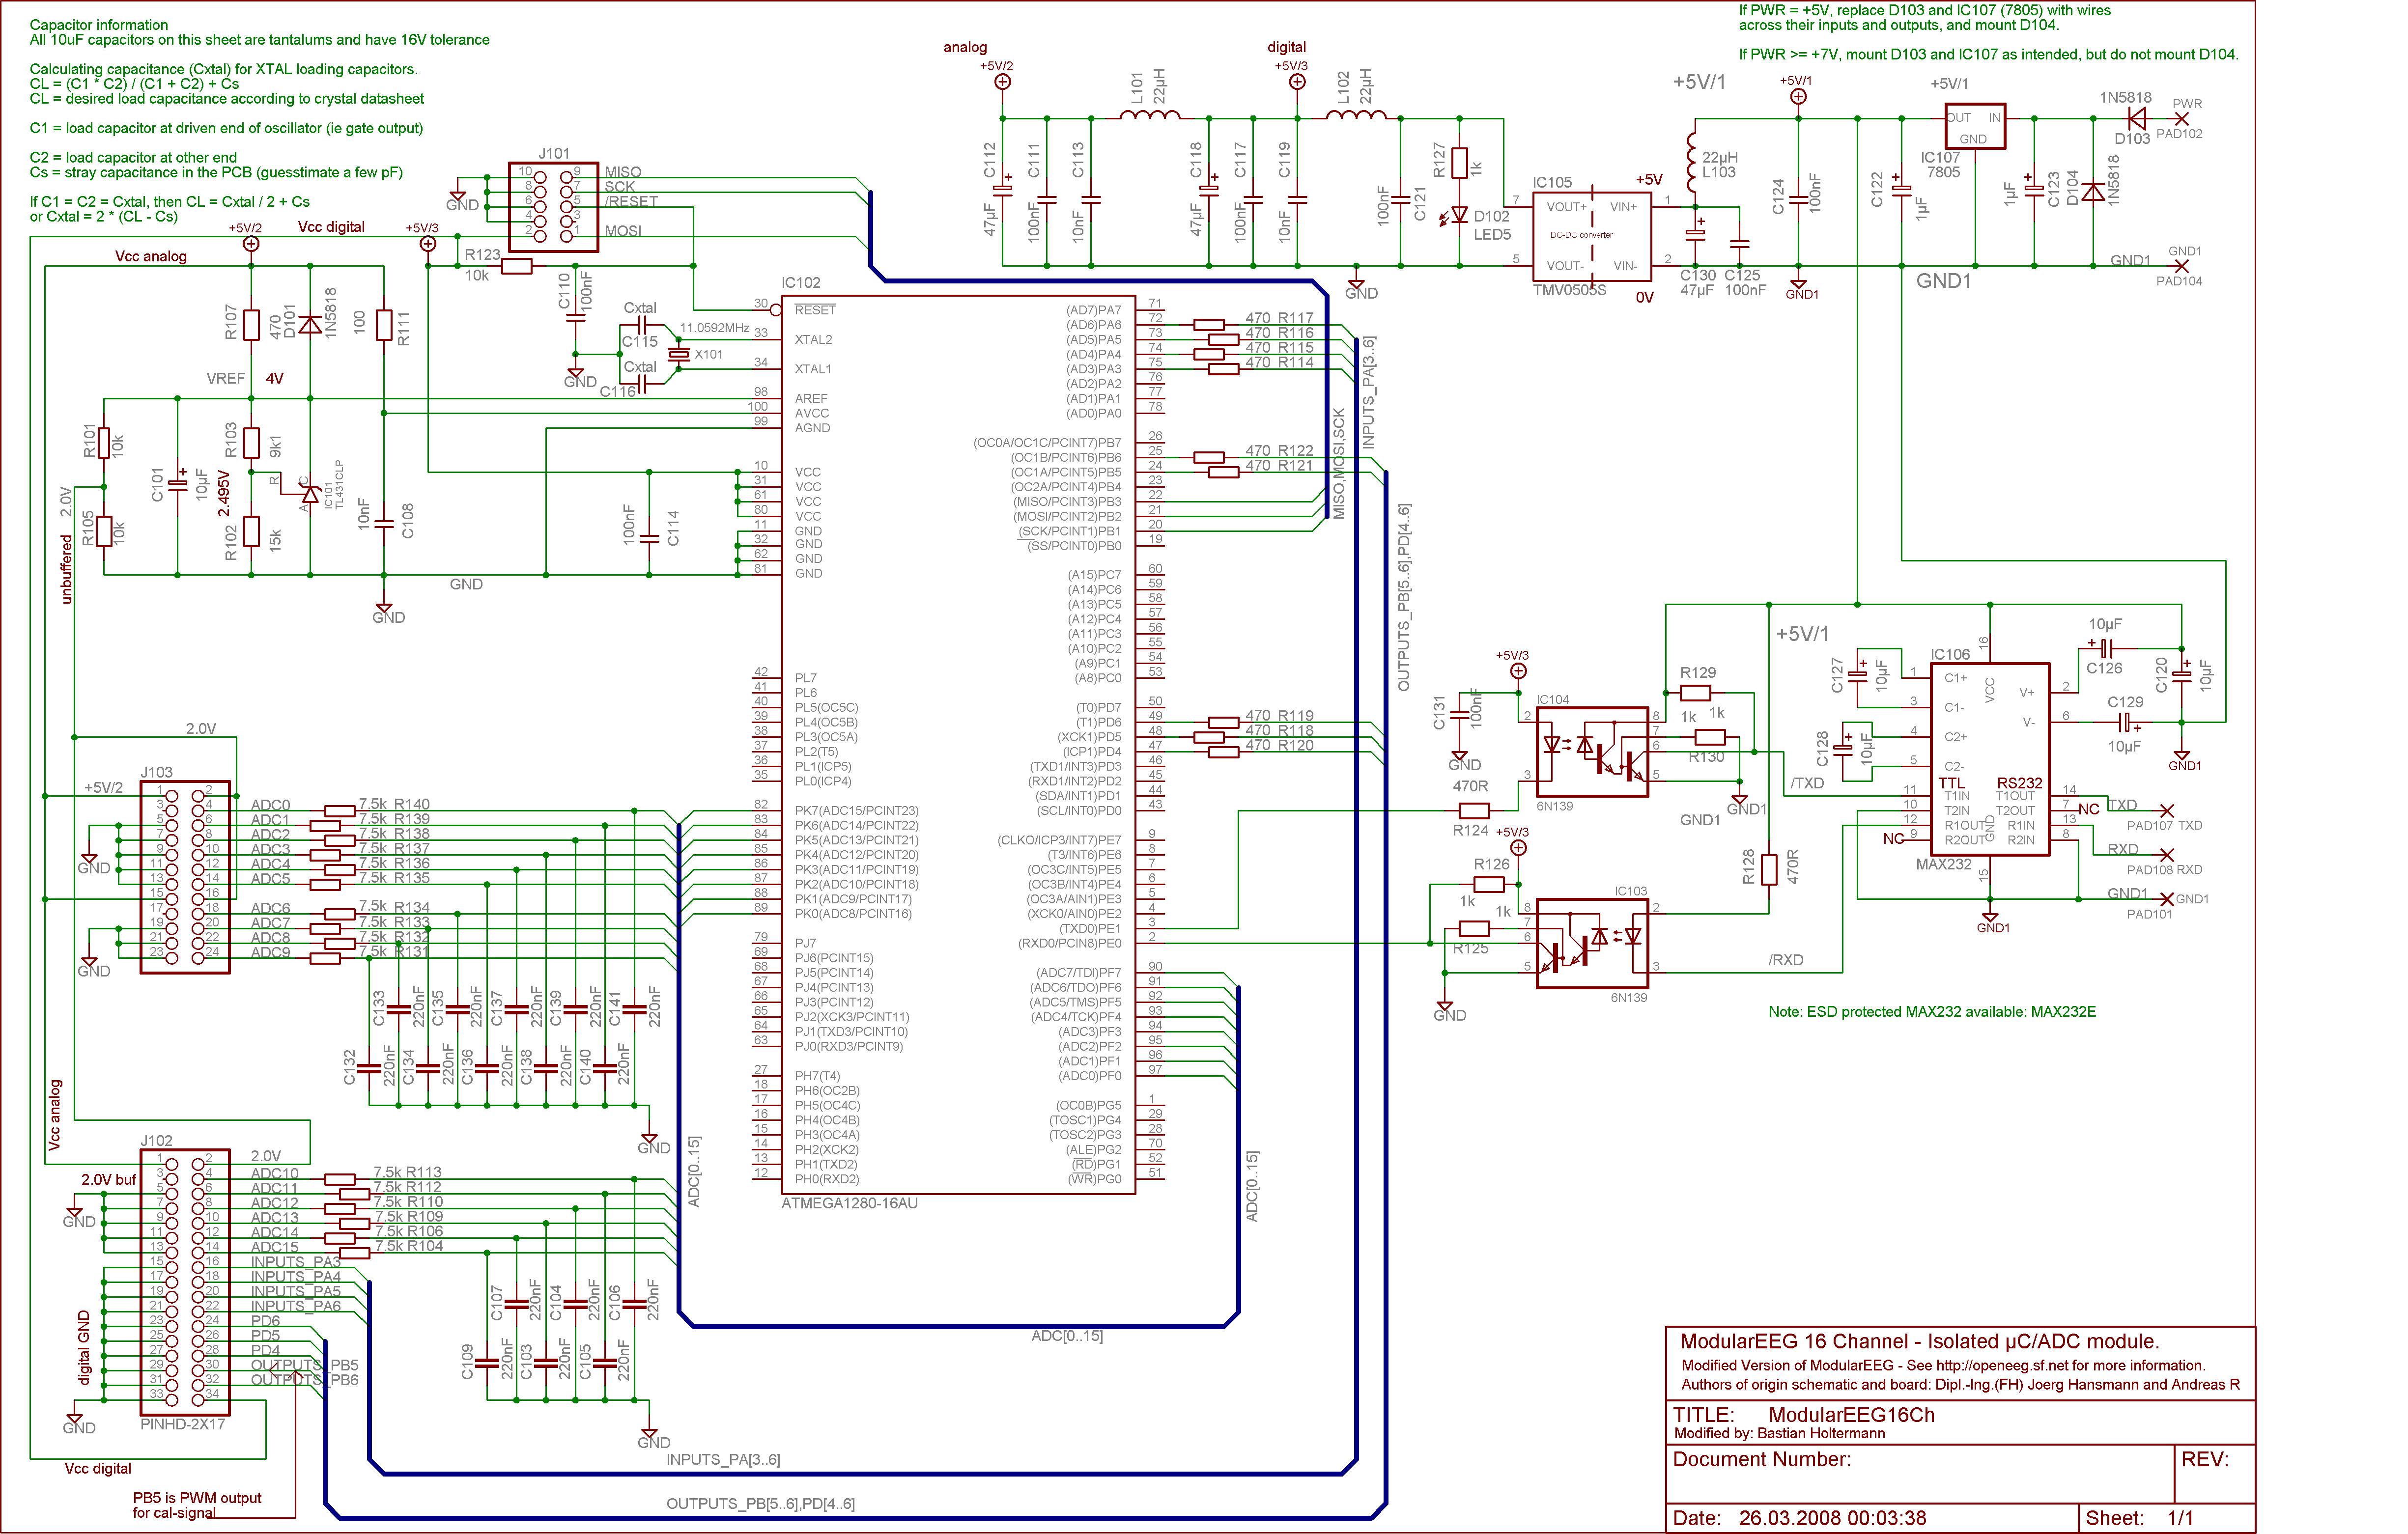 The Modulareeg Circuit Diagram Pcb Design Schematic Layout And Sources